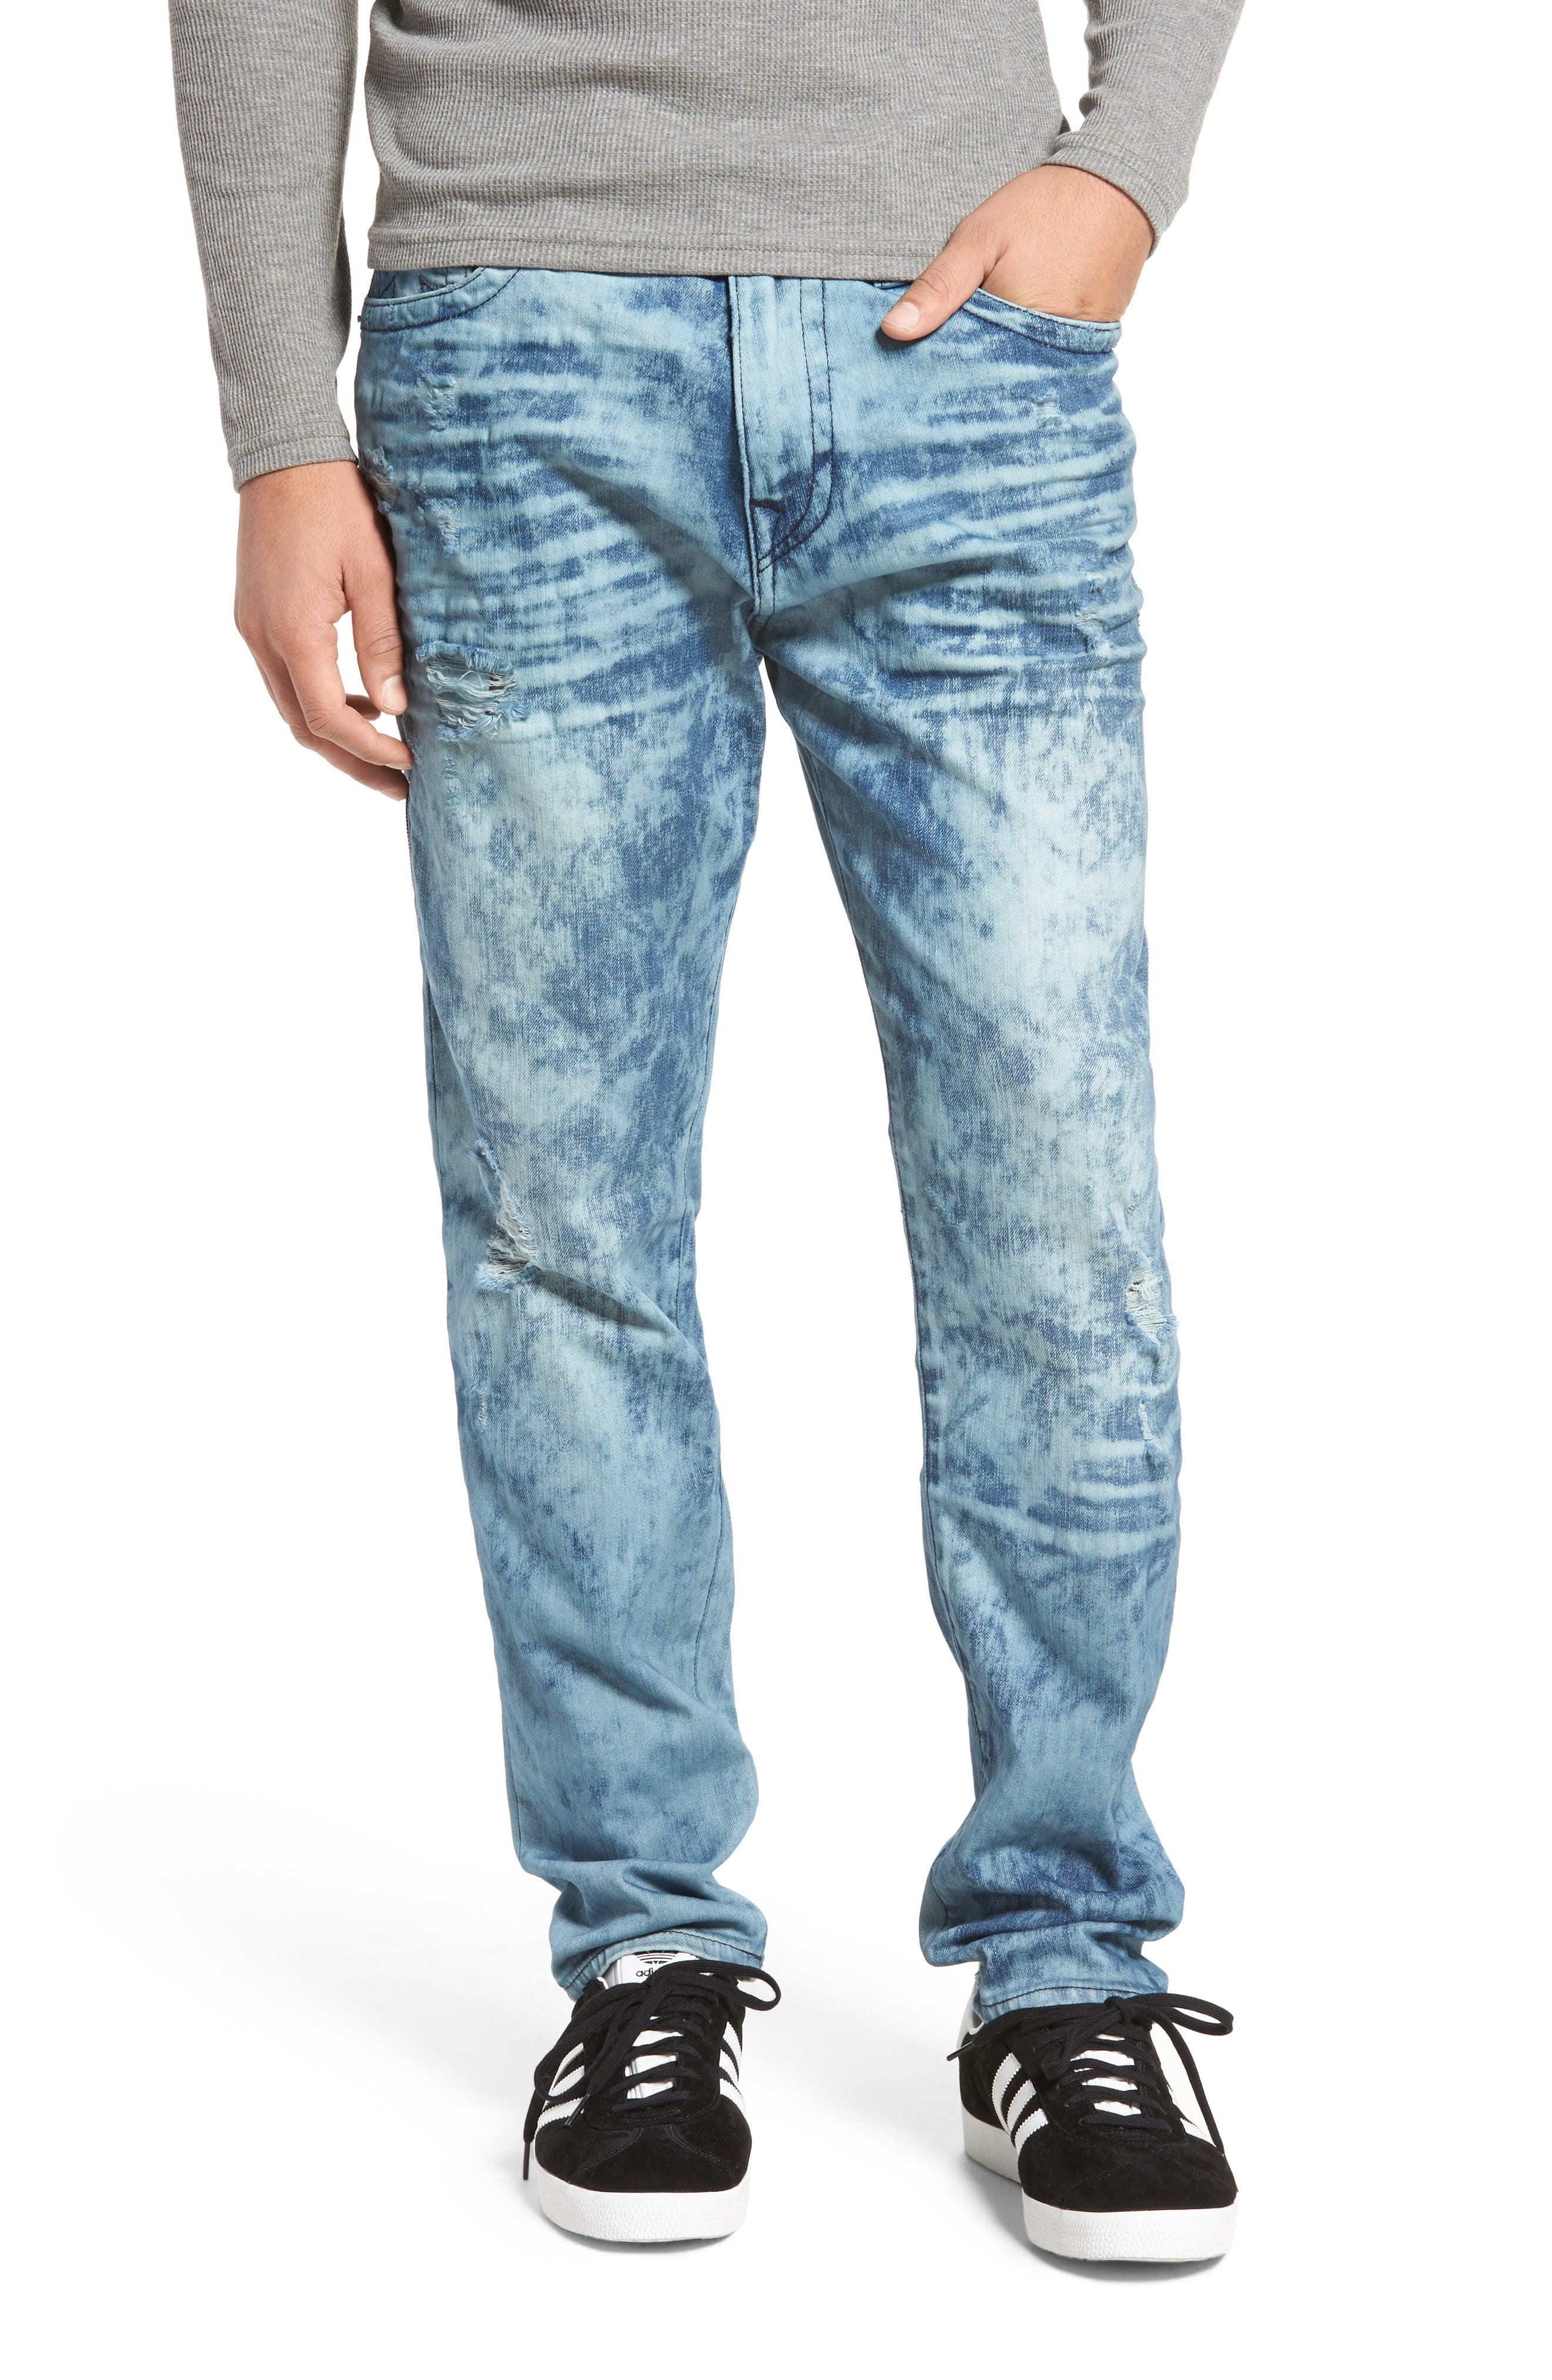 Mick Skinny Fit Jeans,                         Main,                         color, 401